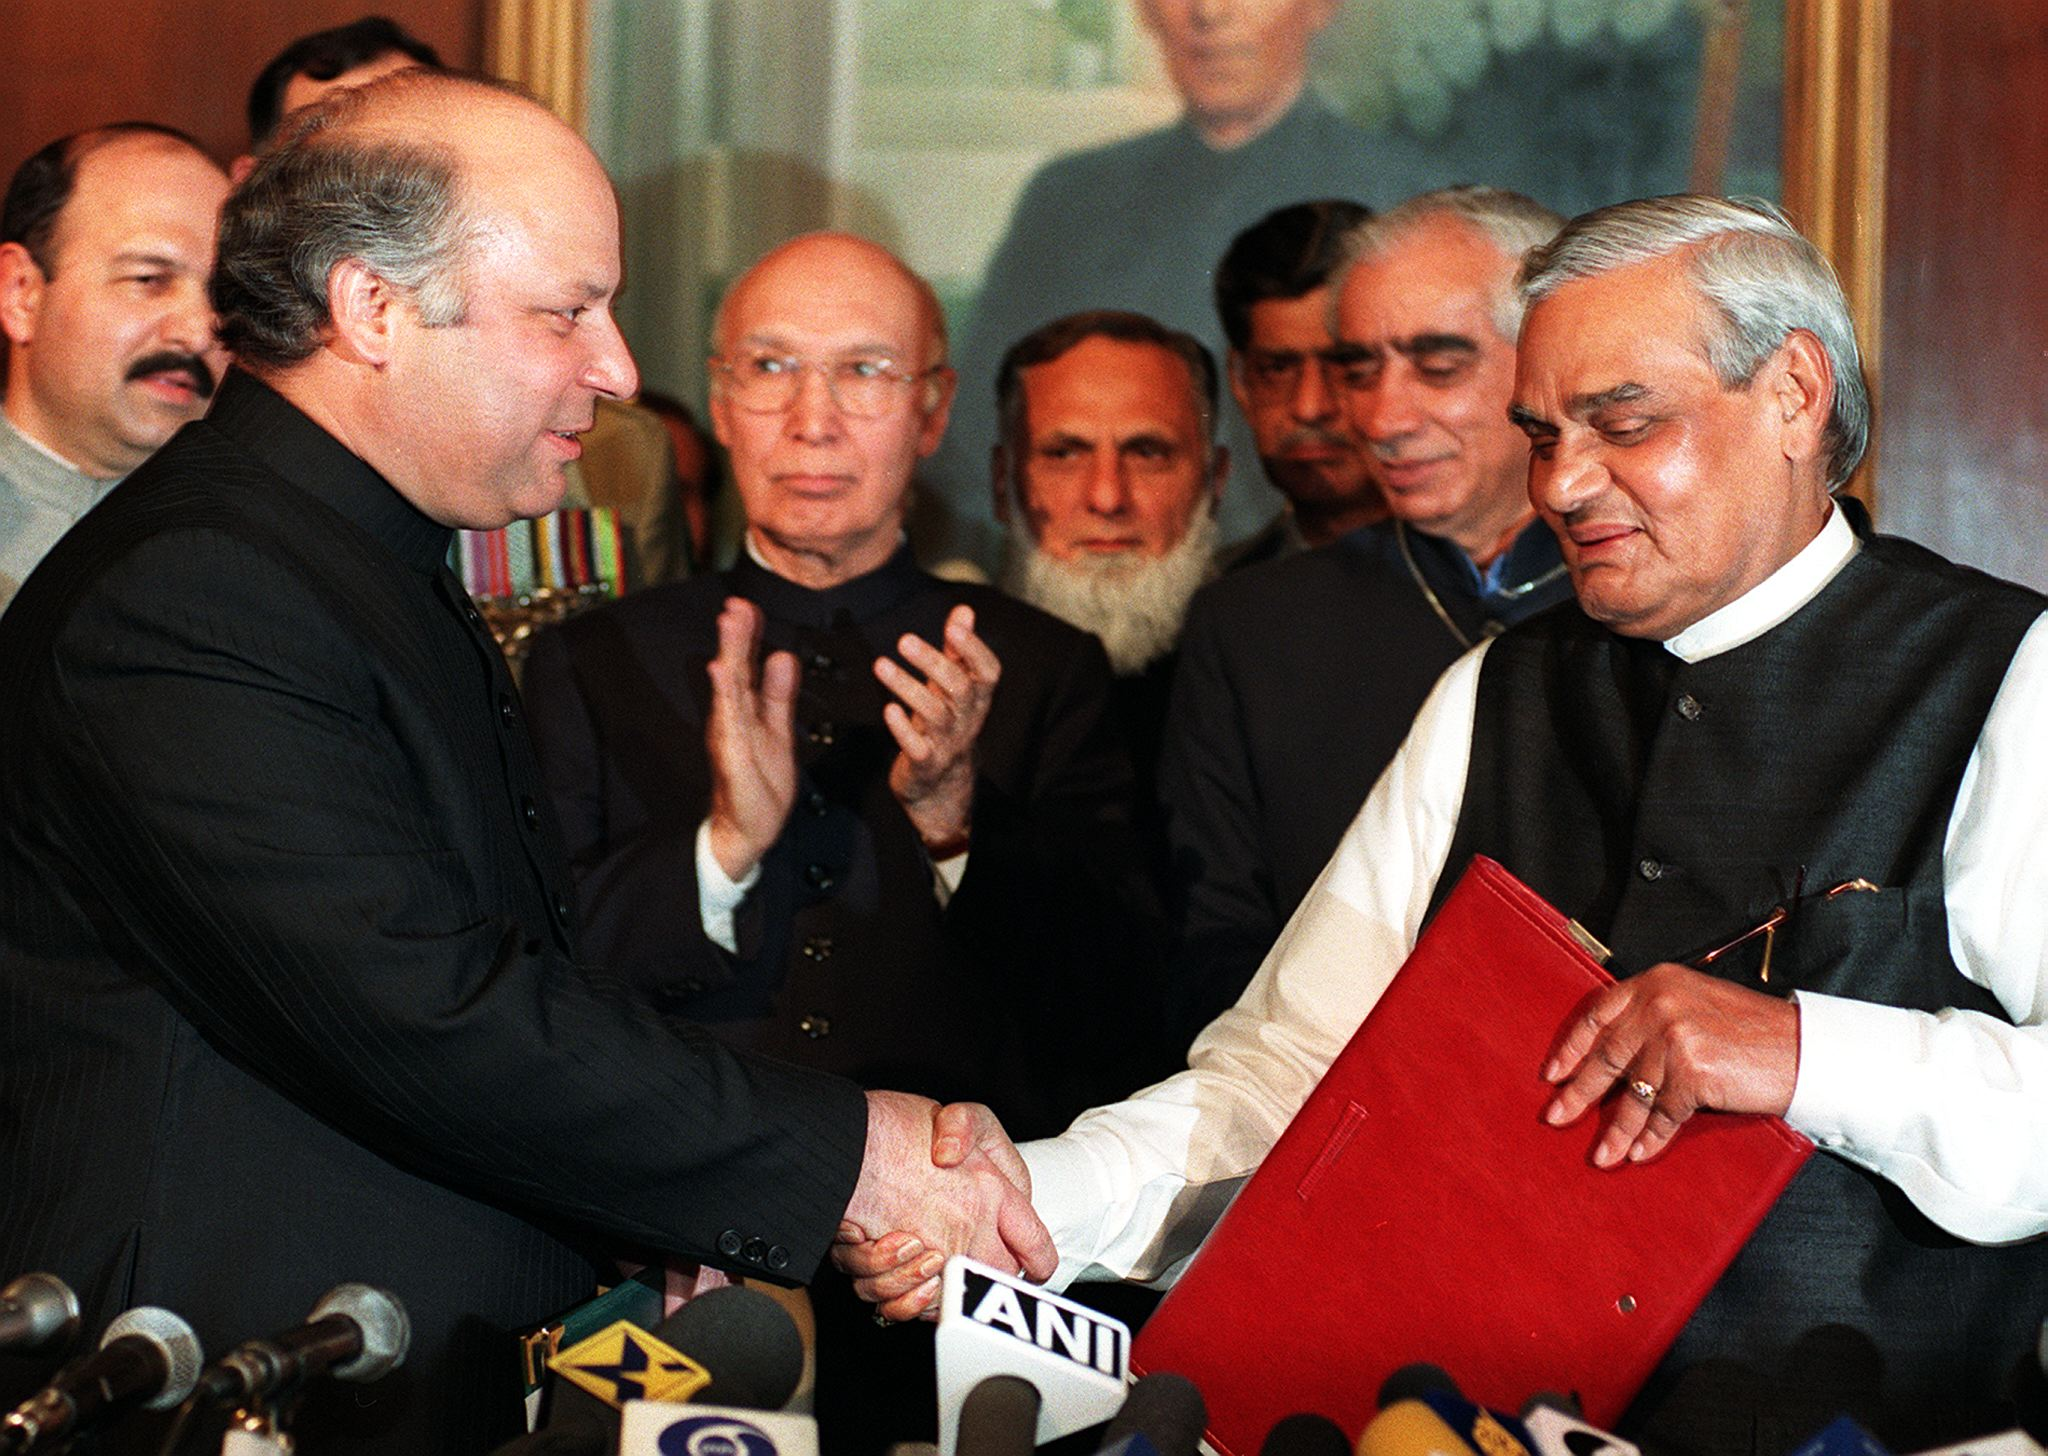 Prime Minister Nawaz Sharif (L) exchanges documents with his Indian counterpart Atal Behari Vajpayee (R) at Governor House in Lahore, 21 February.  Both leaders pledged to take immediate steps to reduce the risk of nuclear conflict and to intensify efforts to resolve all disputes, including the key issue of Kashmir. — Photo by AFP